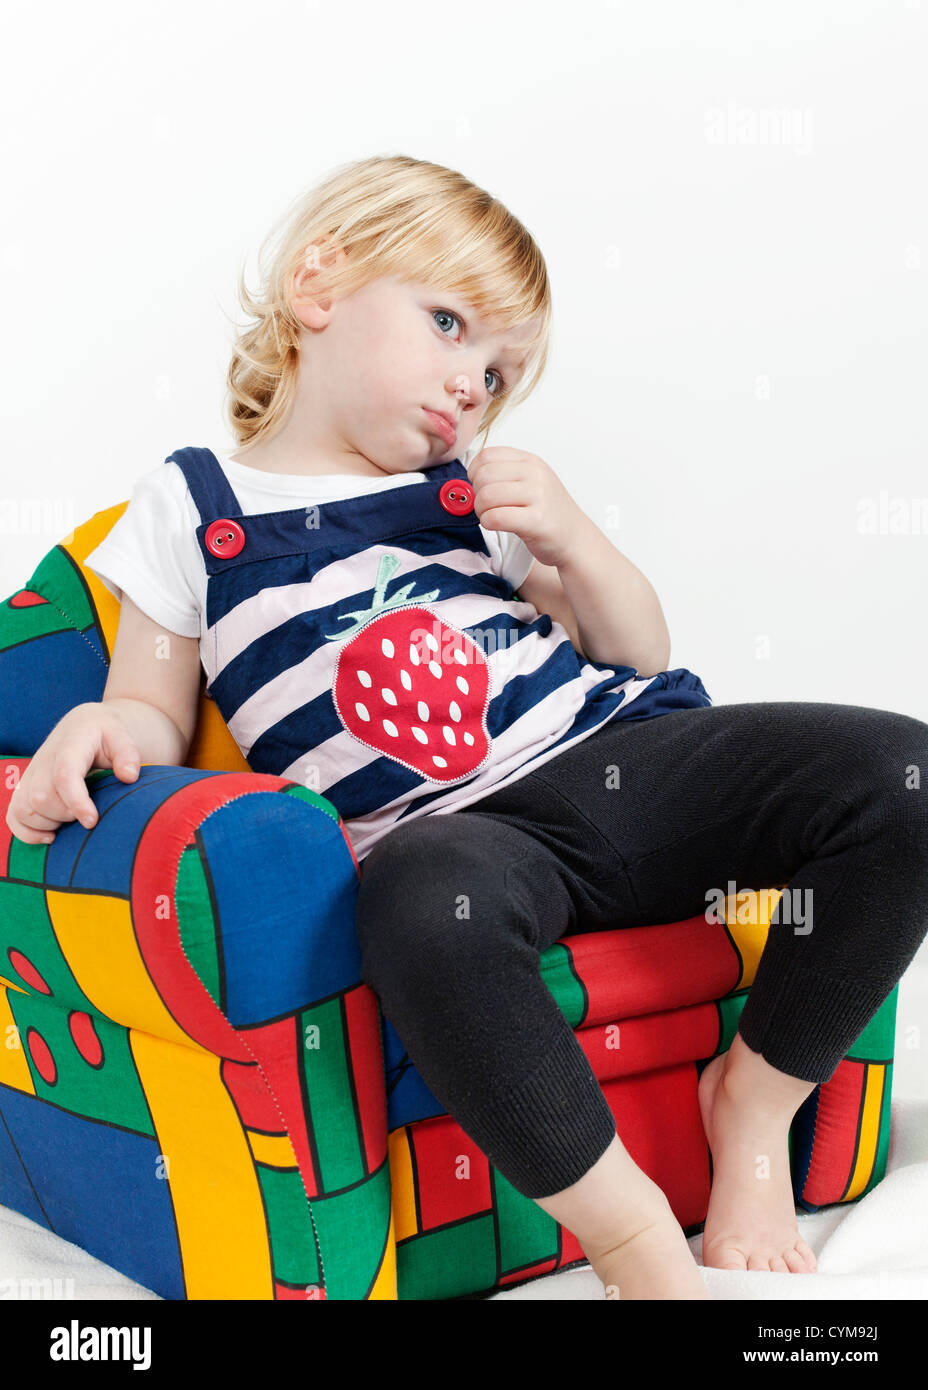 Little girl in a colorful armchair - Stock Image